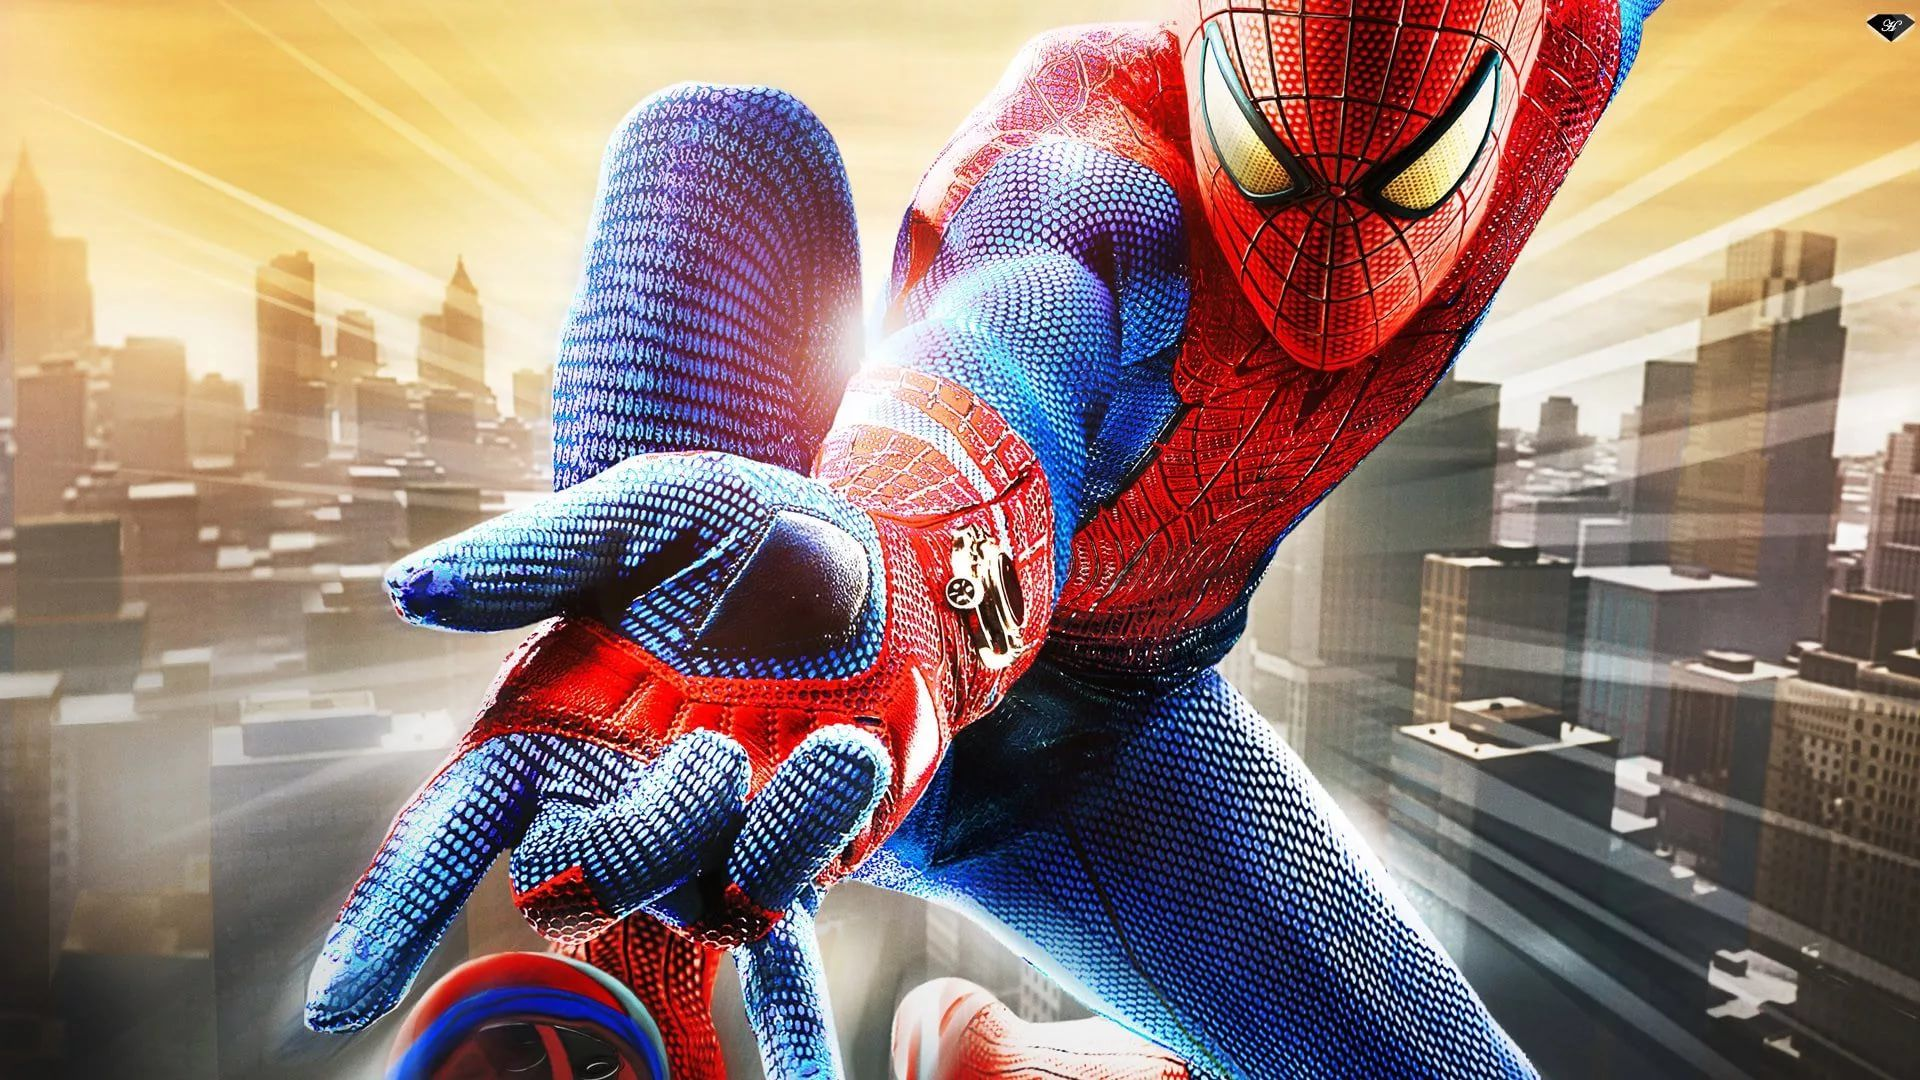 Spiderman Wallpaper Hd 1080p 25 Images Wallpaperboat